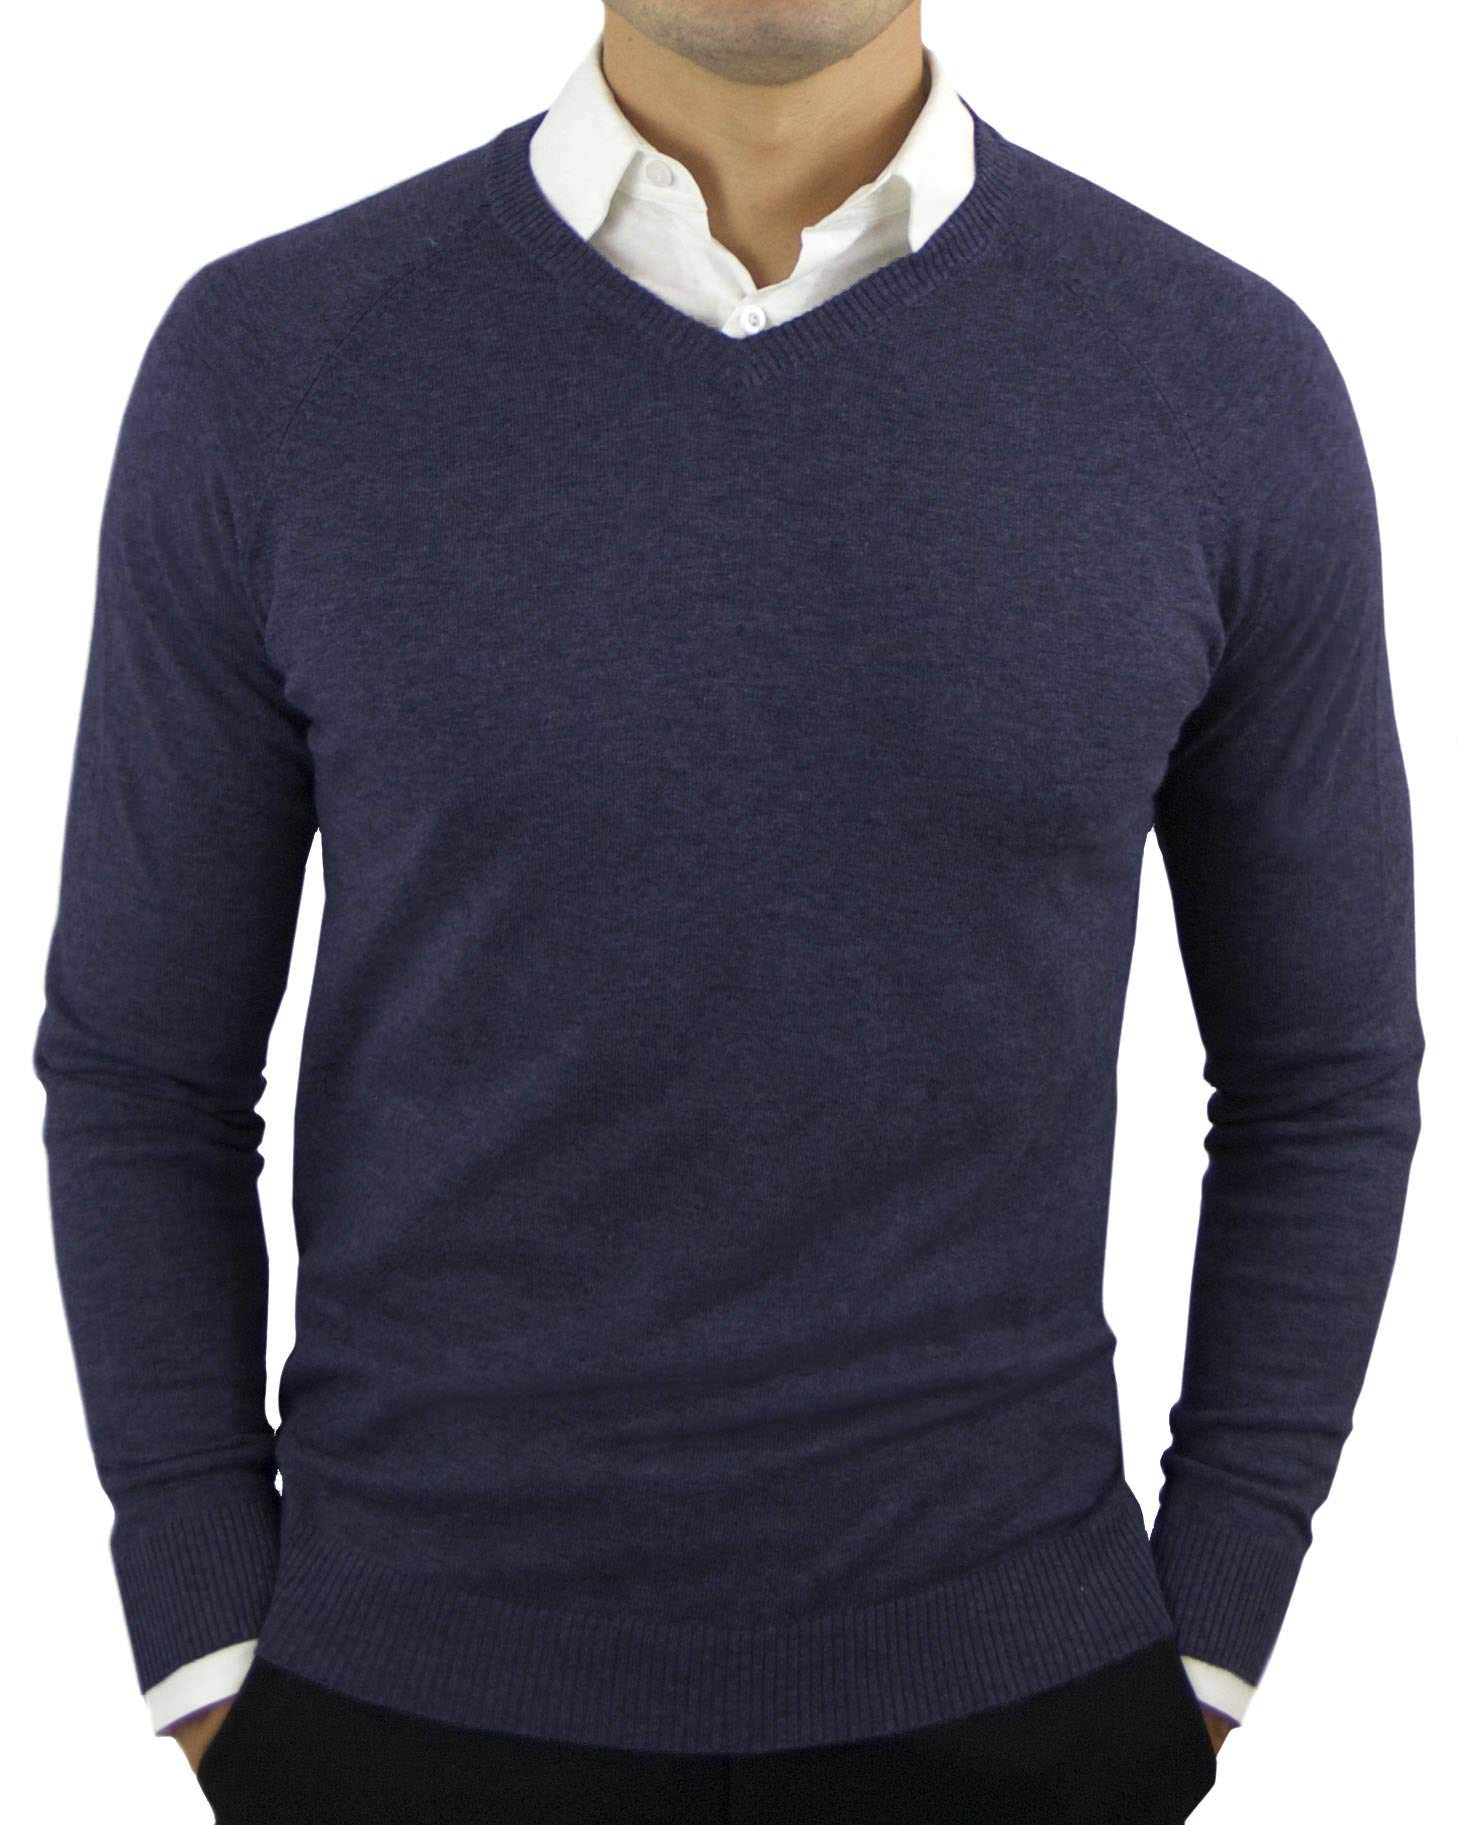 Comfortably Collared Men's Perfect Slim Fit Lightweight Soft Fitted V-Neck Pullover Sweater, Medium, Navy Blue